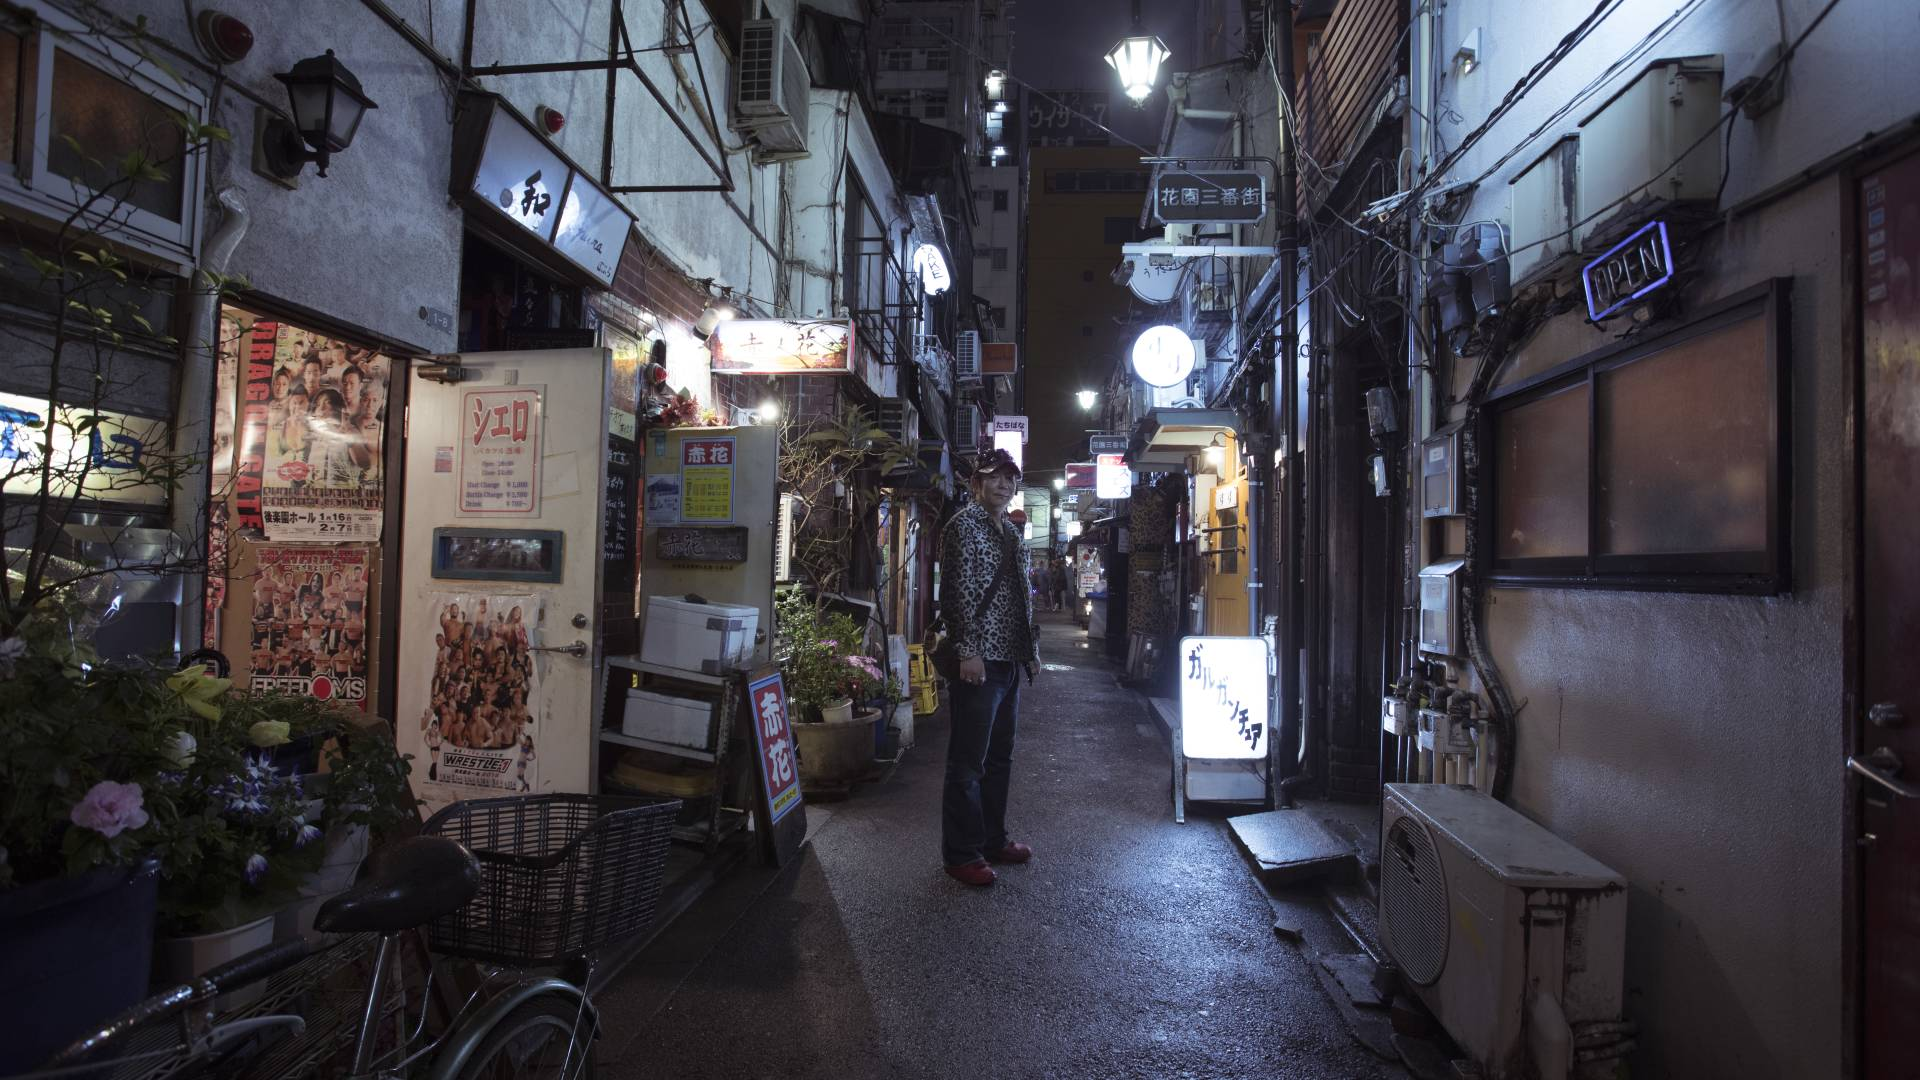 A restaurant owner from the Golden Gai shines a light on Shinjuk